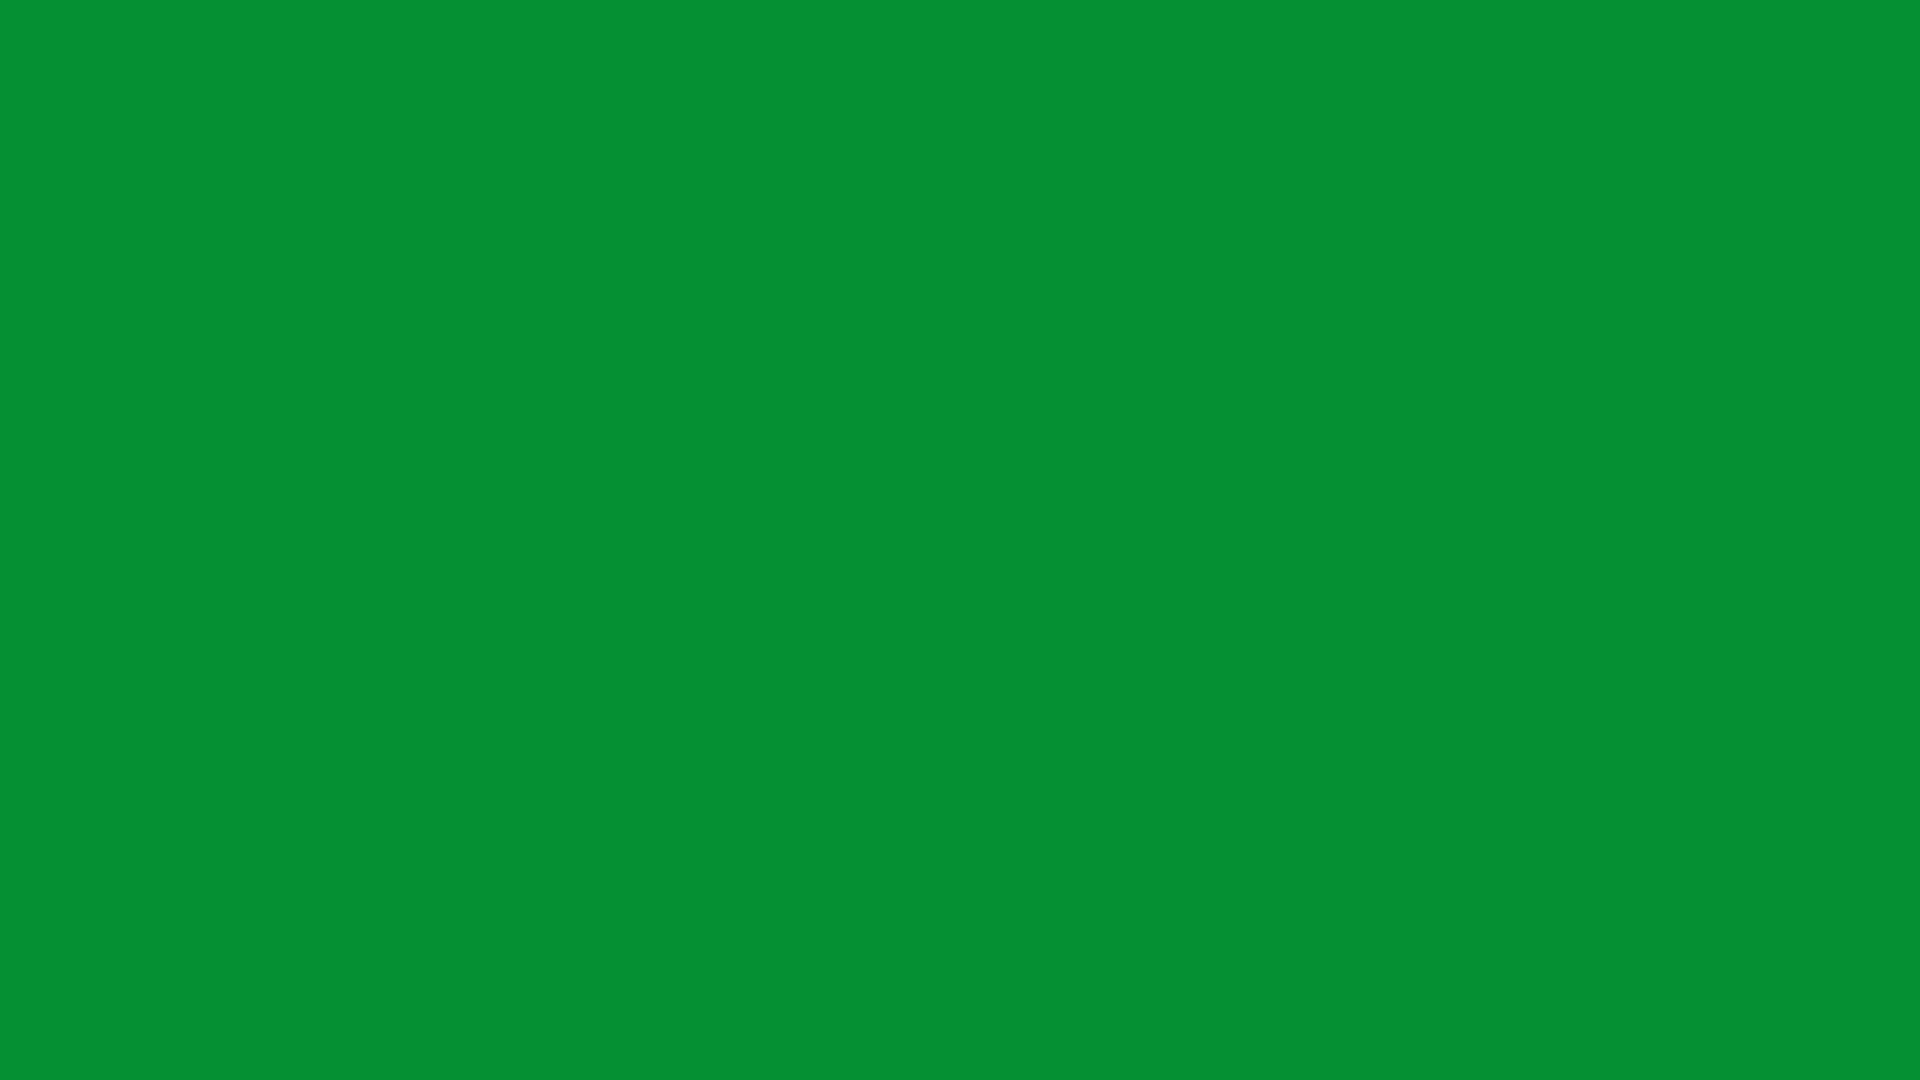 1920x1080 North Texas Green Solid Color Background